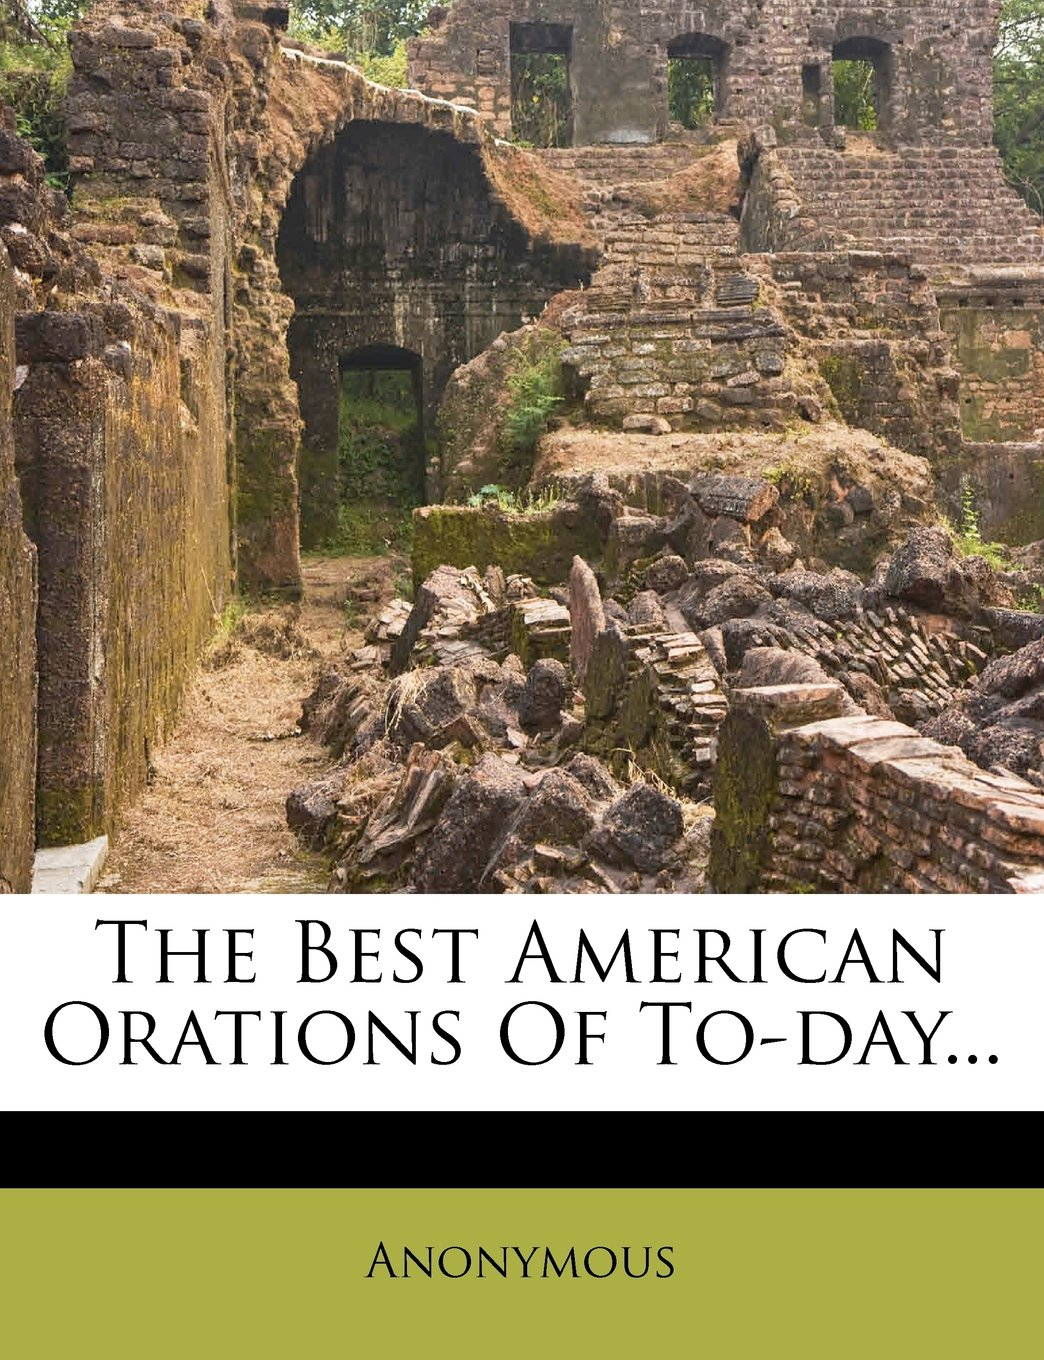 The Best American Orations Of To-day... PDF ePub ebook